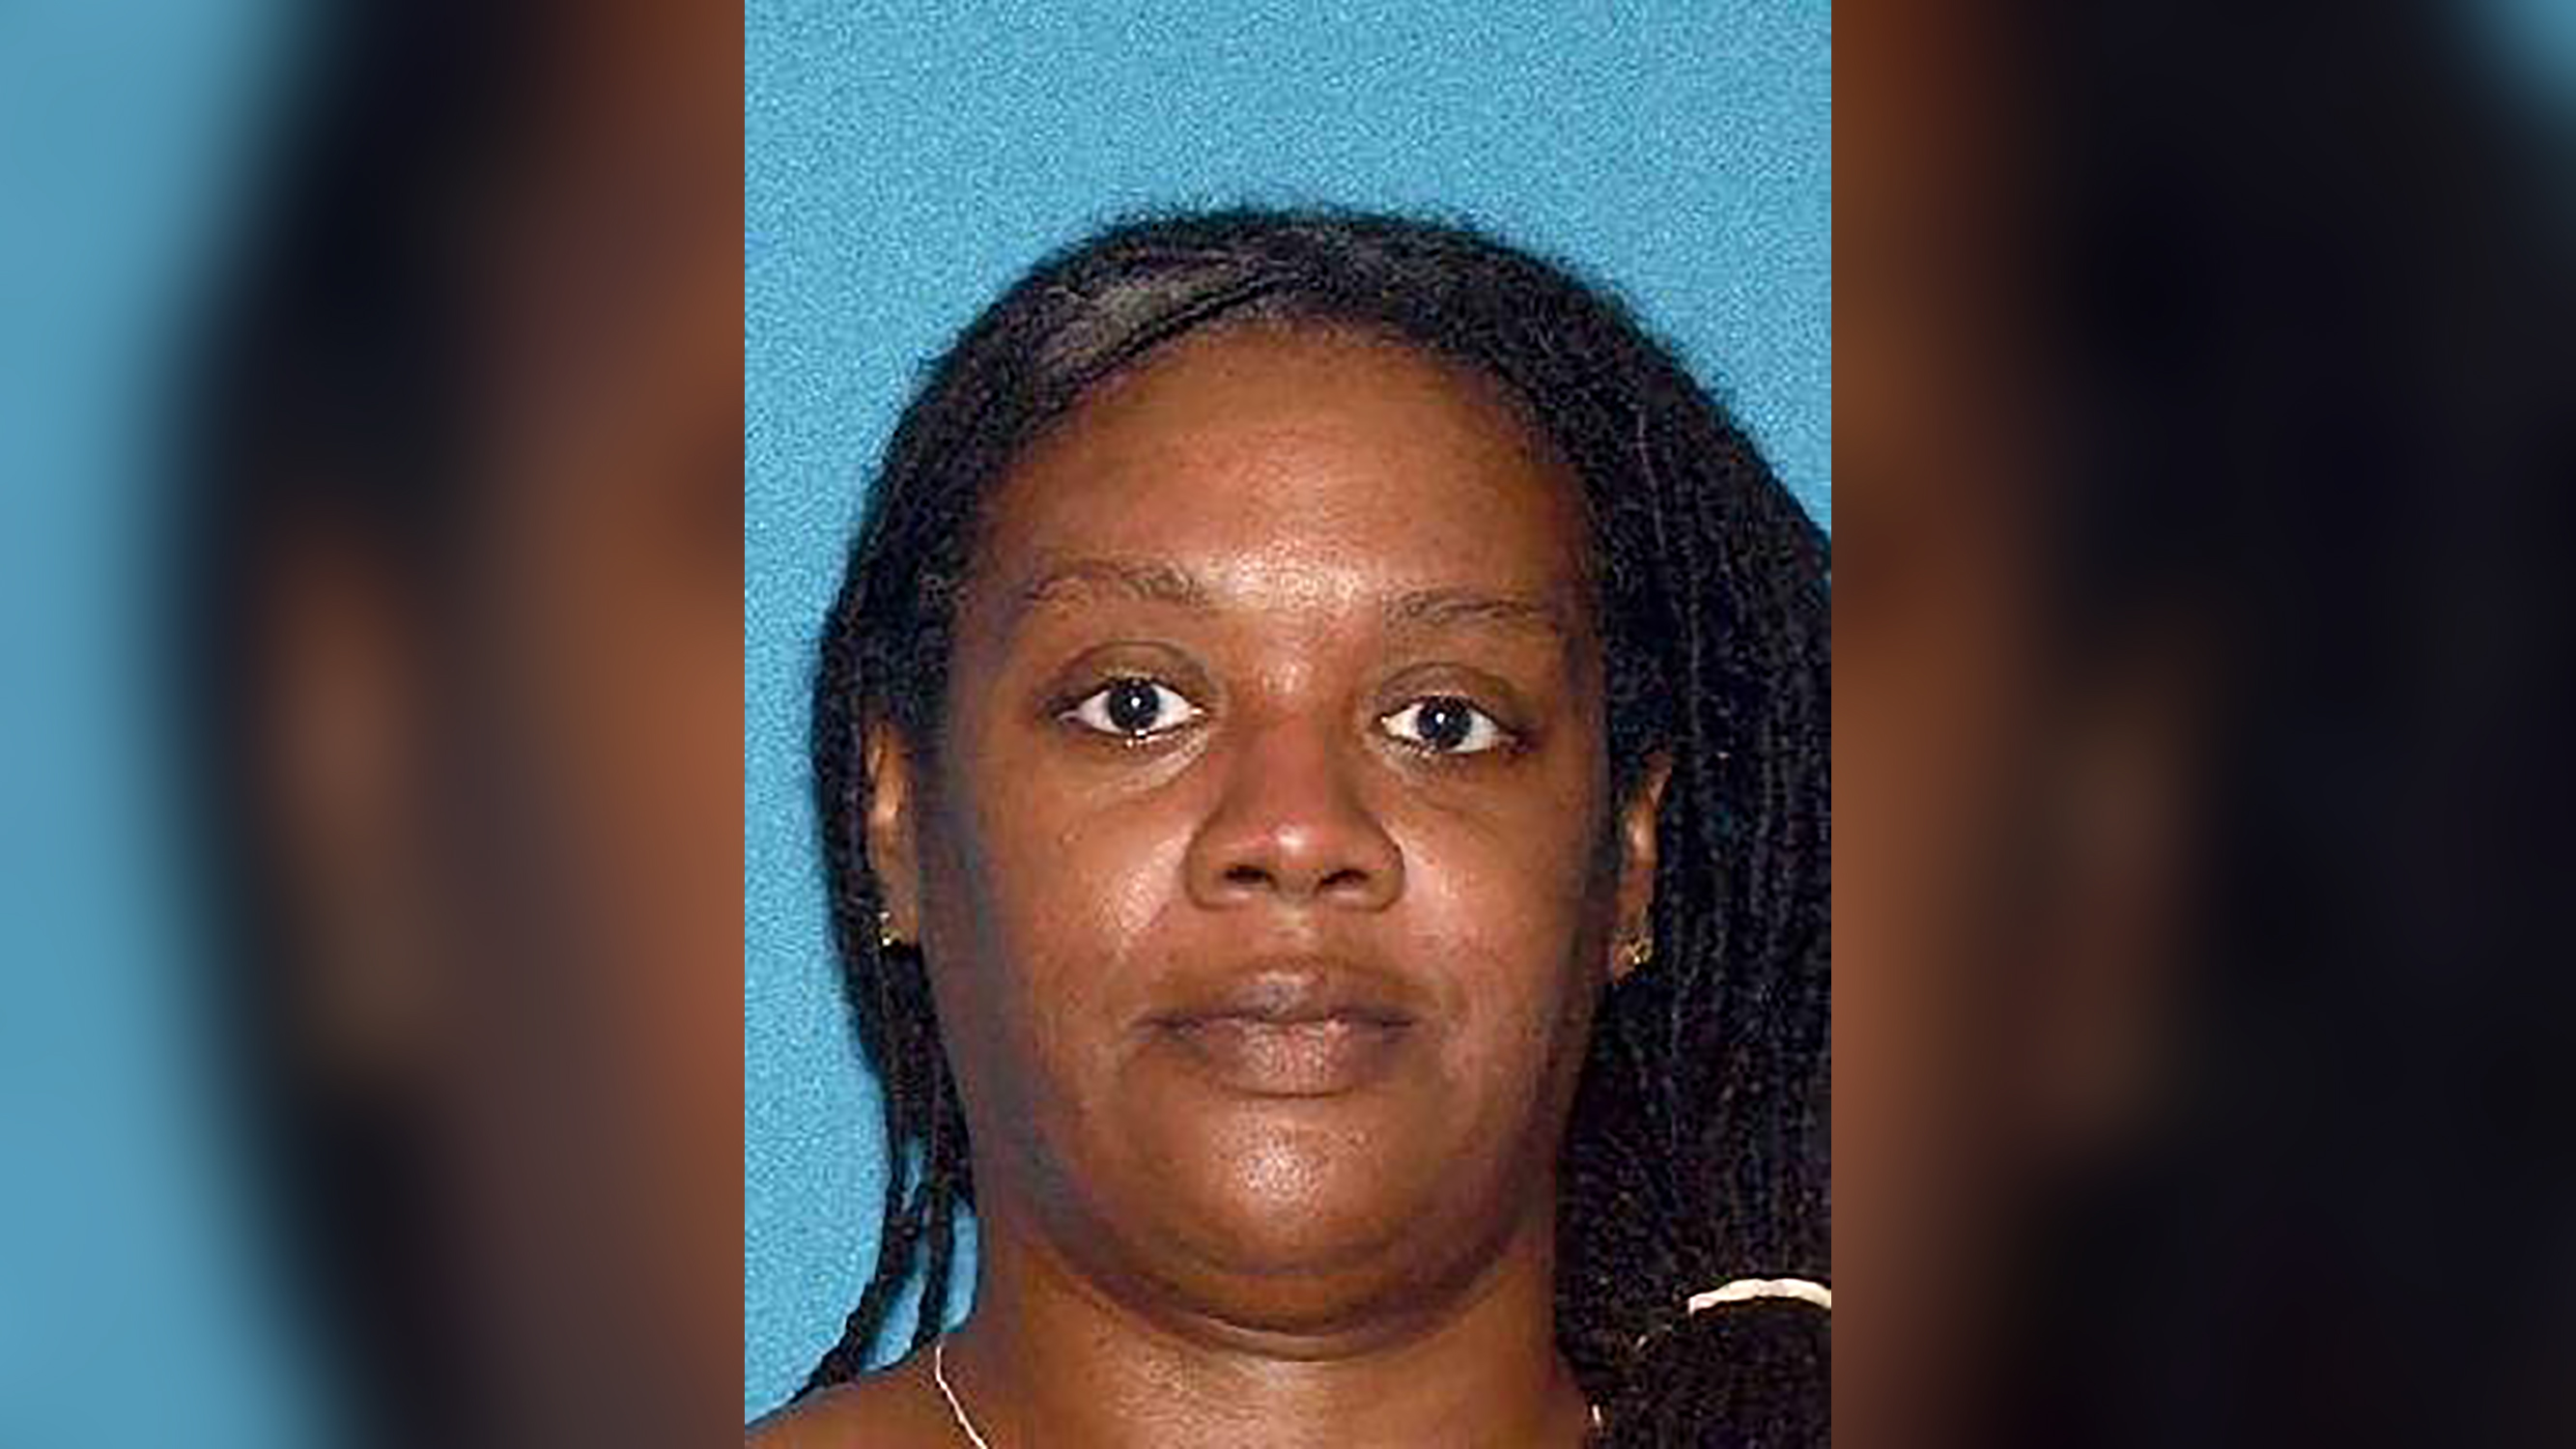 For those who knew NJ shooter Francine Graham, deadly rampage brings total shock